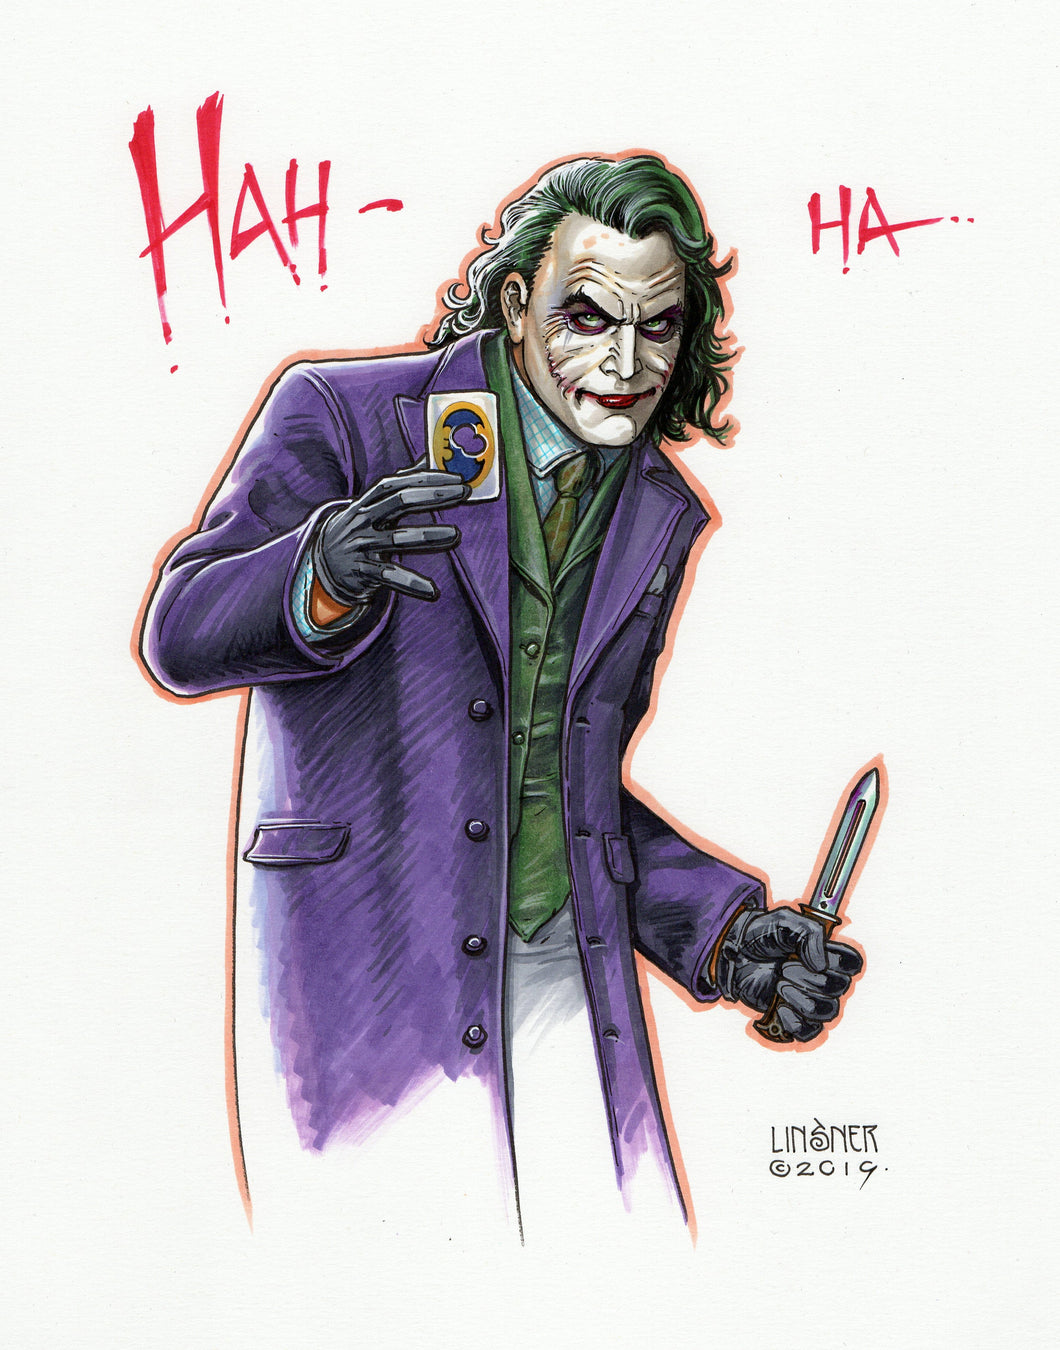 Heath Ledger Joker by Joseph Michael Linsner- 9x13